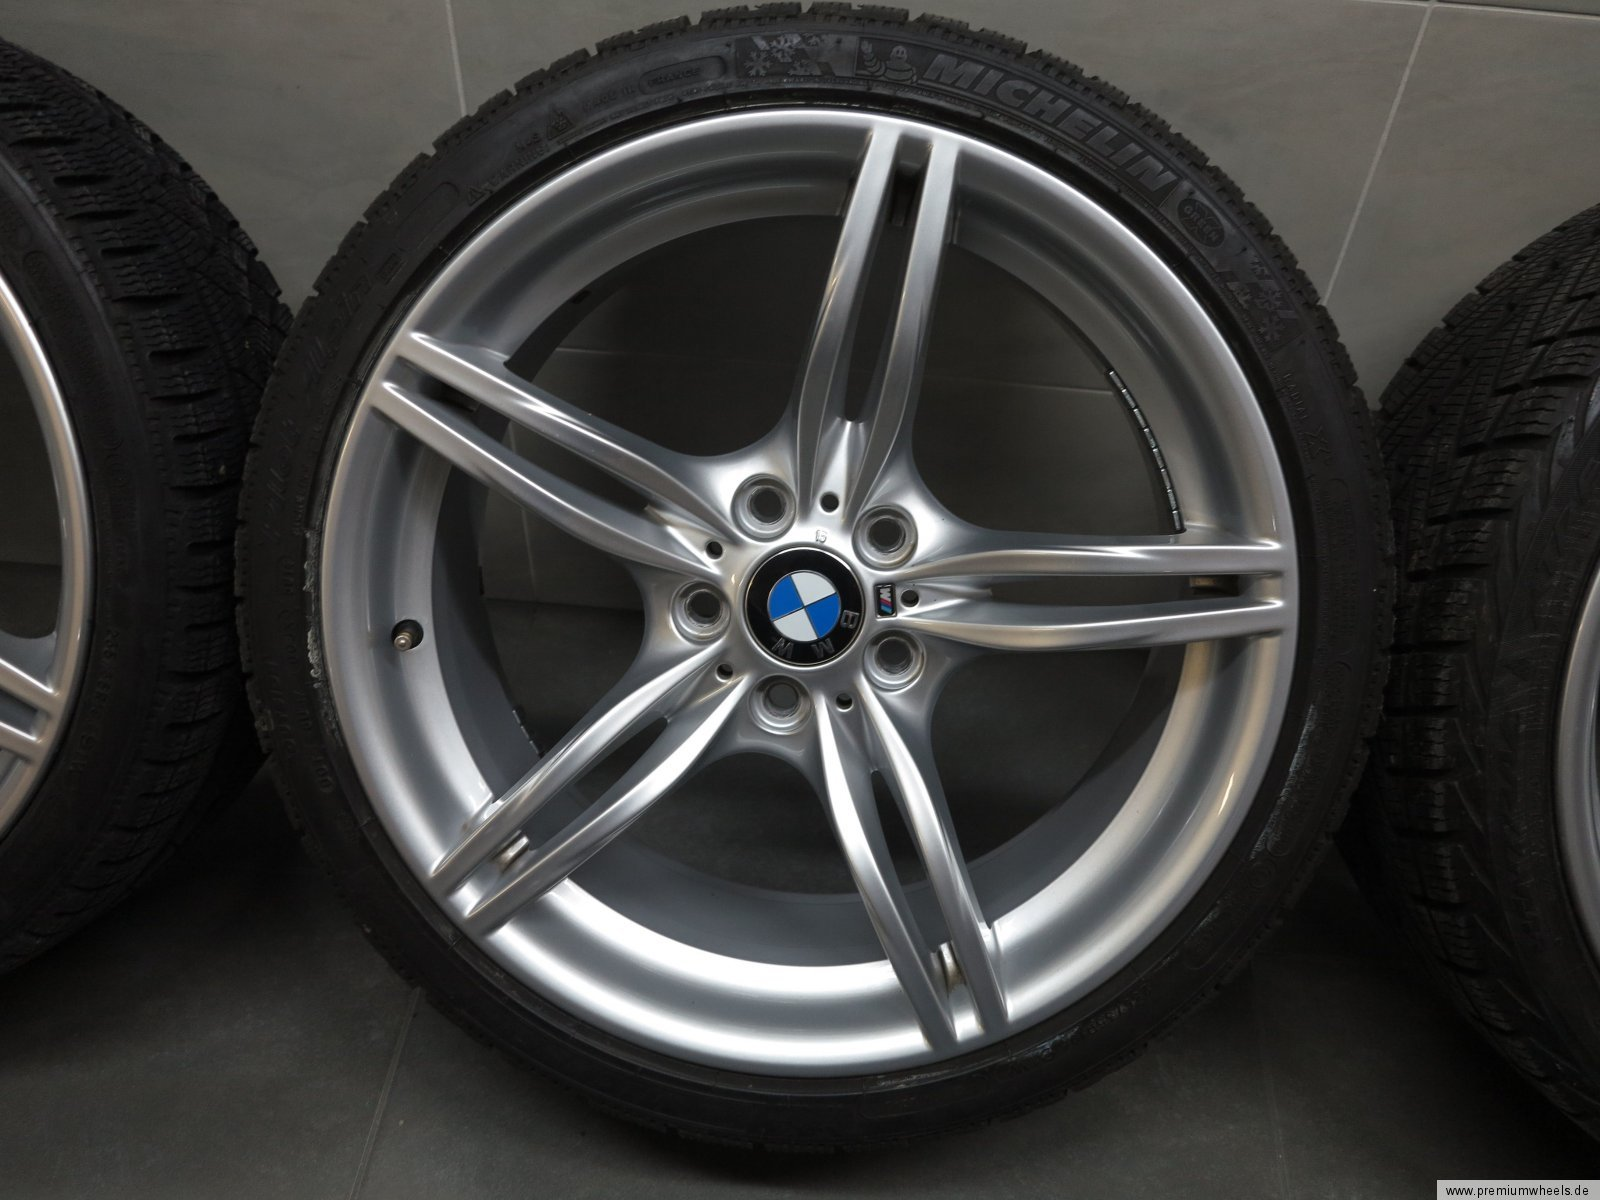 19 Inch Original Winter Wheels Bmw Z4 E89 Styling M326